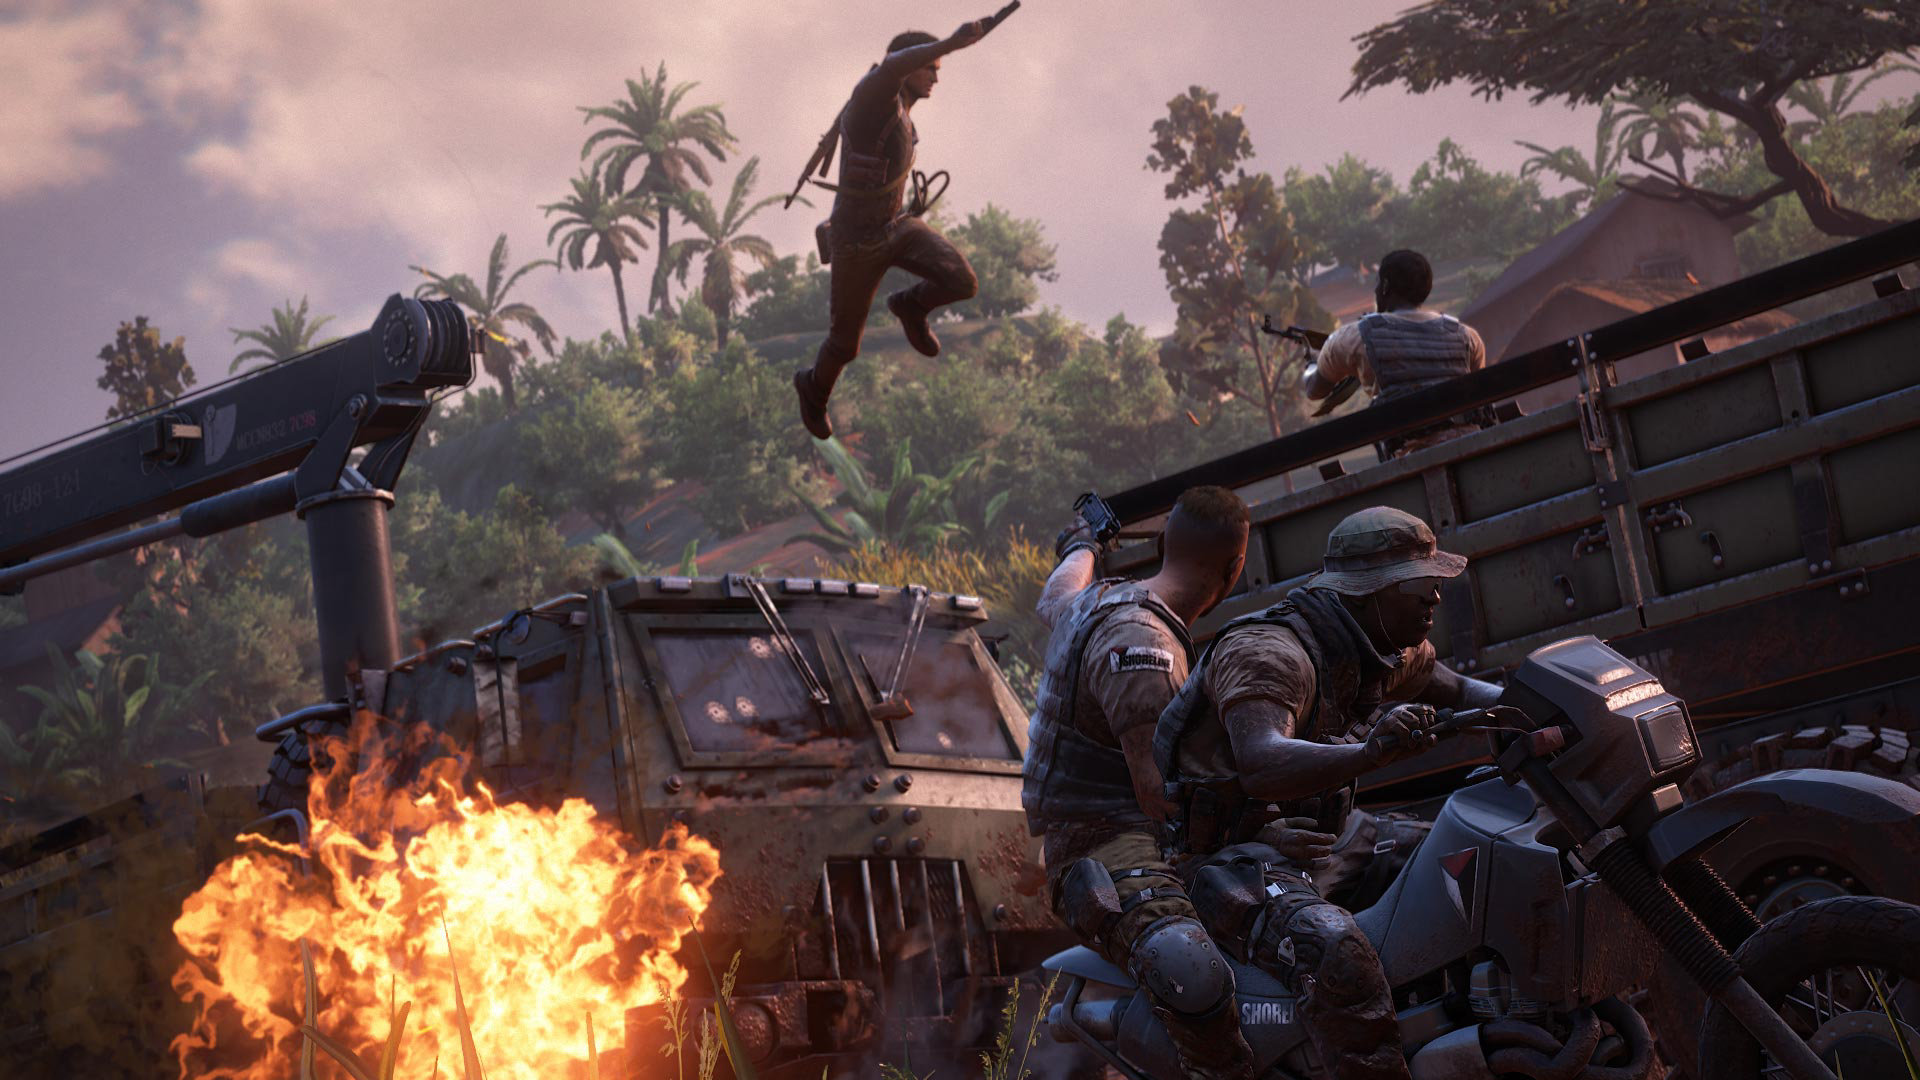 uncharted-4-screen-20-ps4-eu-23june15